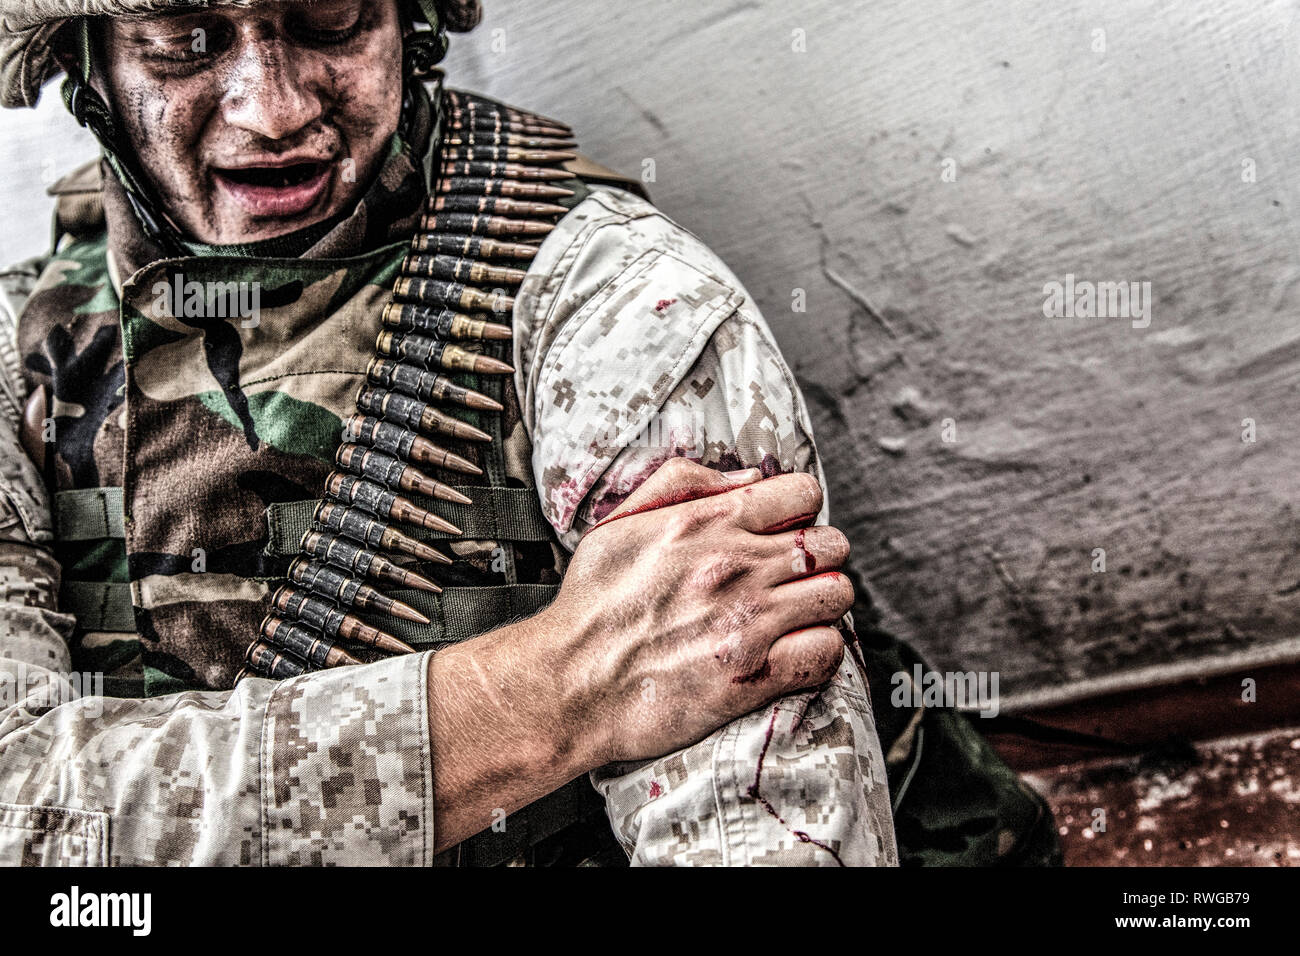 Soldier clamping his gunshot wound with healthy hand to try and stop bleeding. - Stock Image